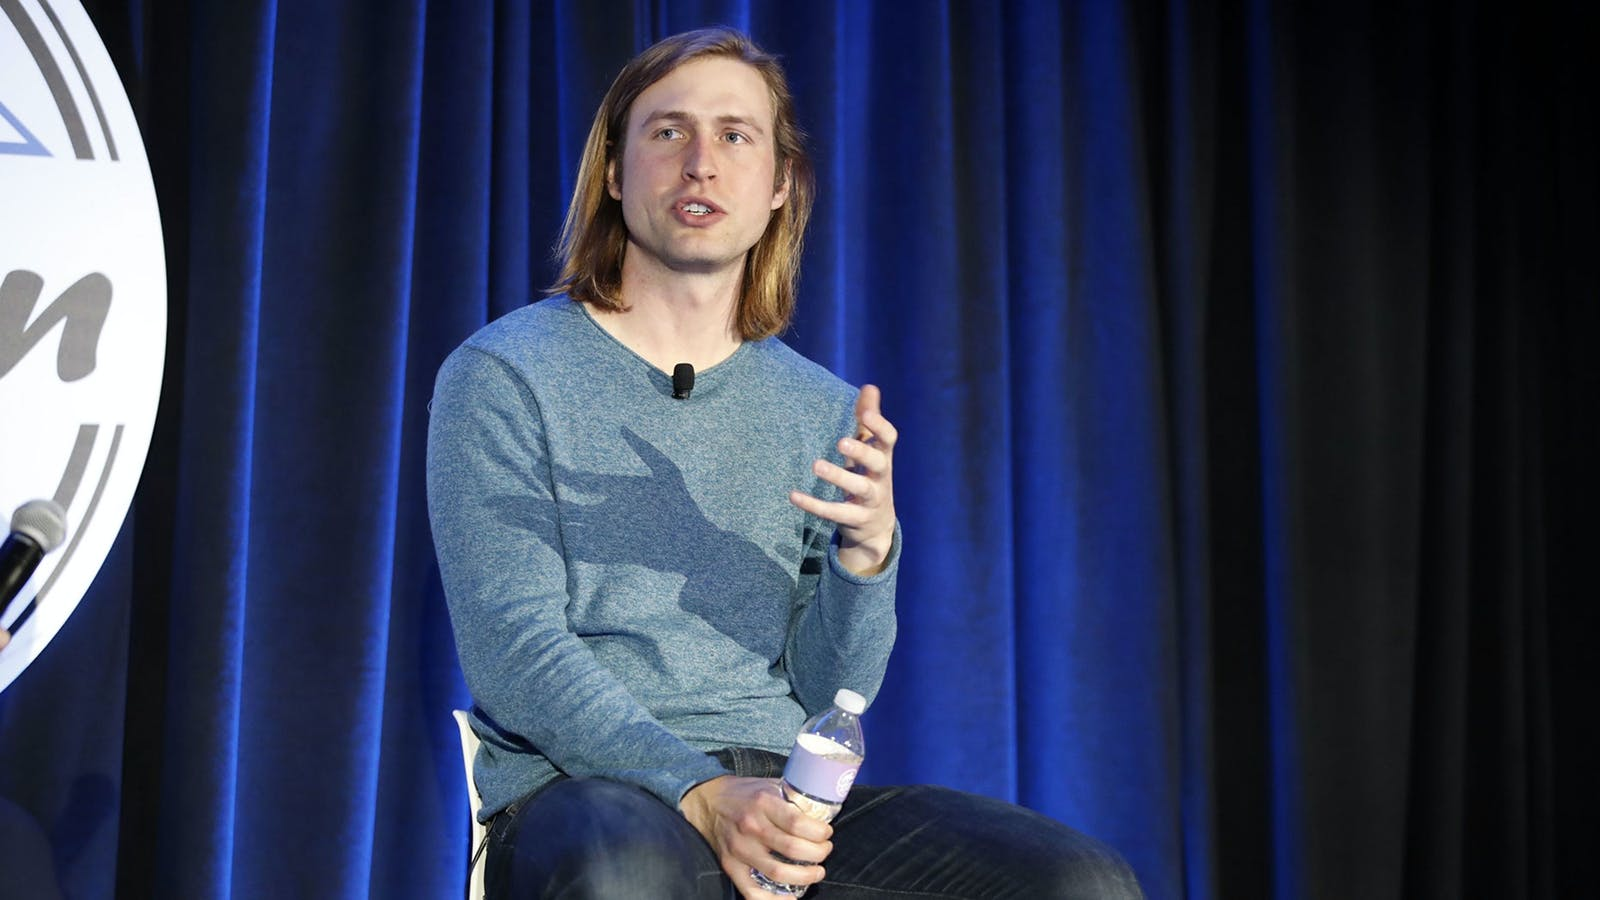 Zach Perret, CEO and co-founder of Plaid, speaks during the Silicon Slopes Tech Summit in Salt Lake City in 2020.